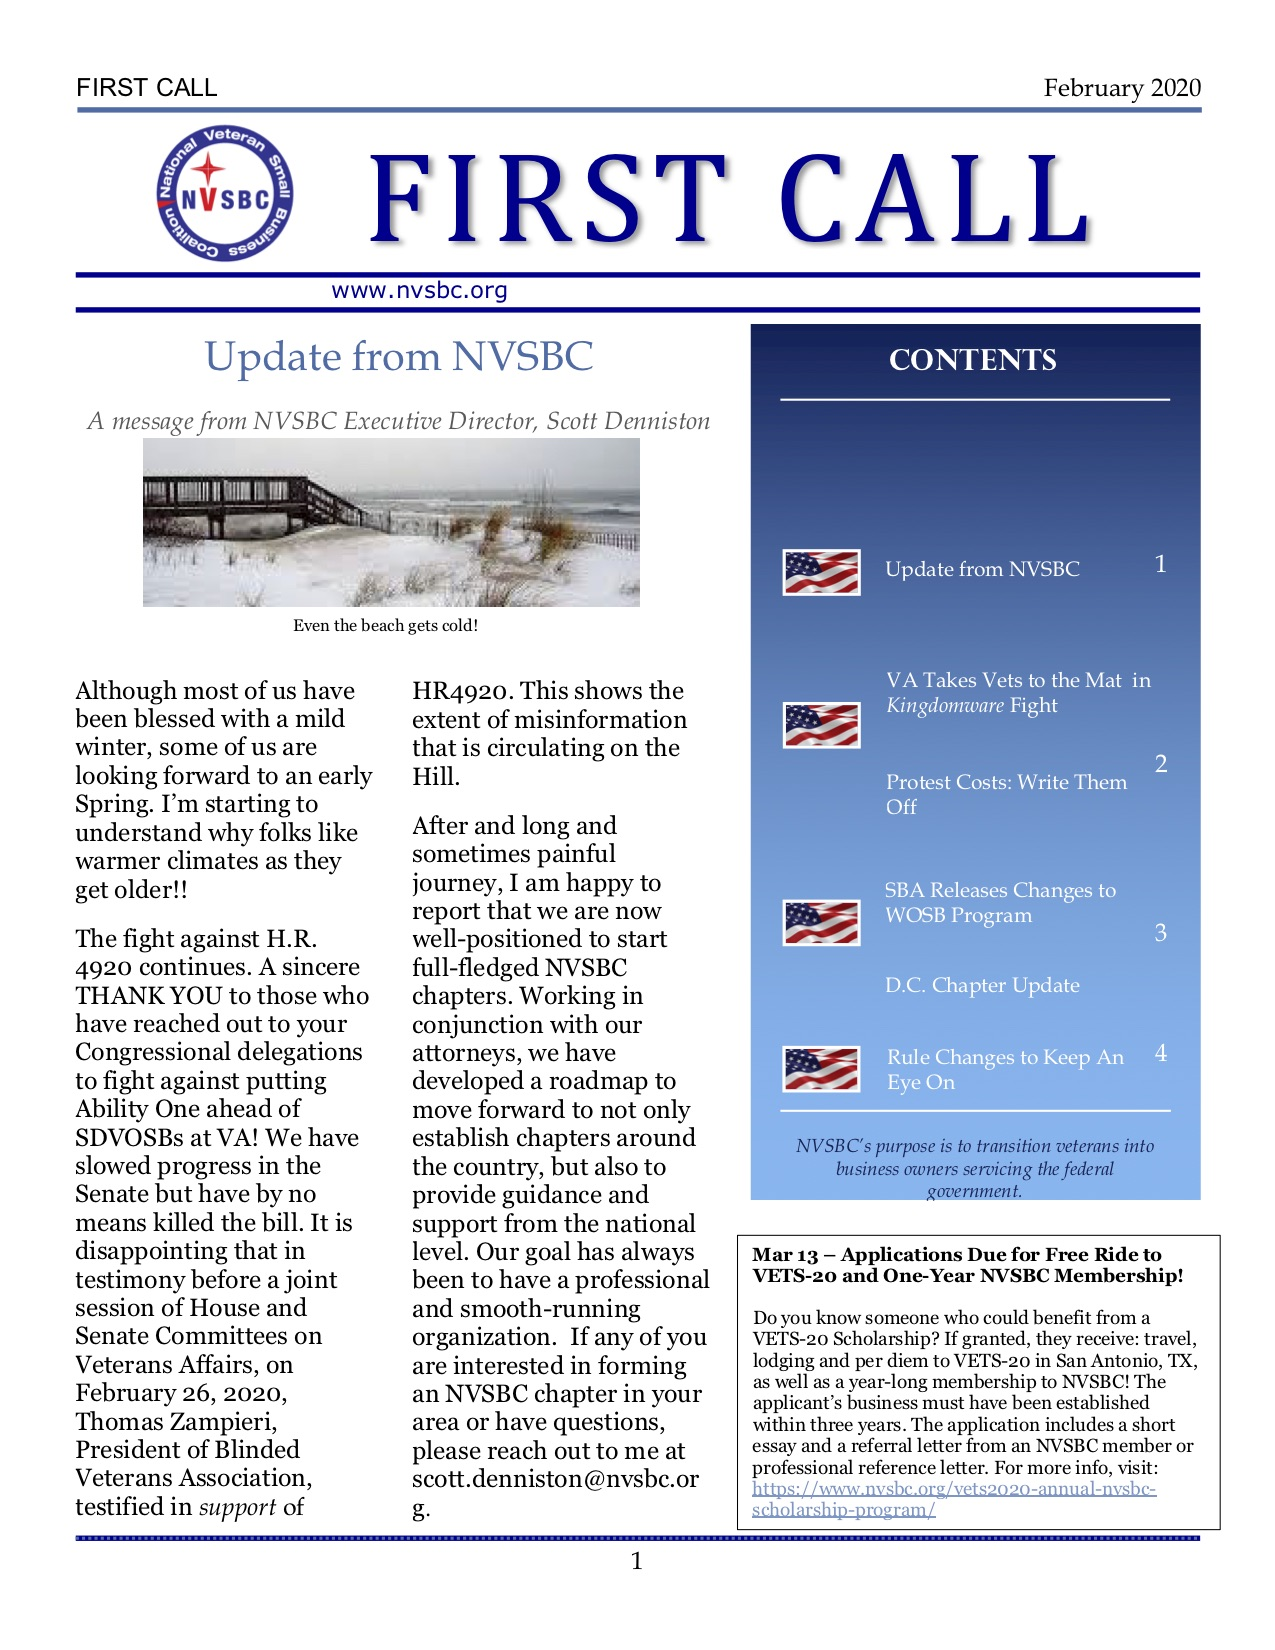 First Call – February 2020